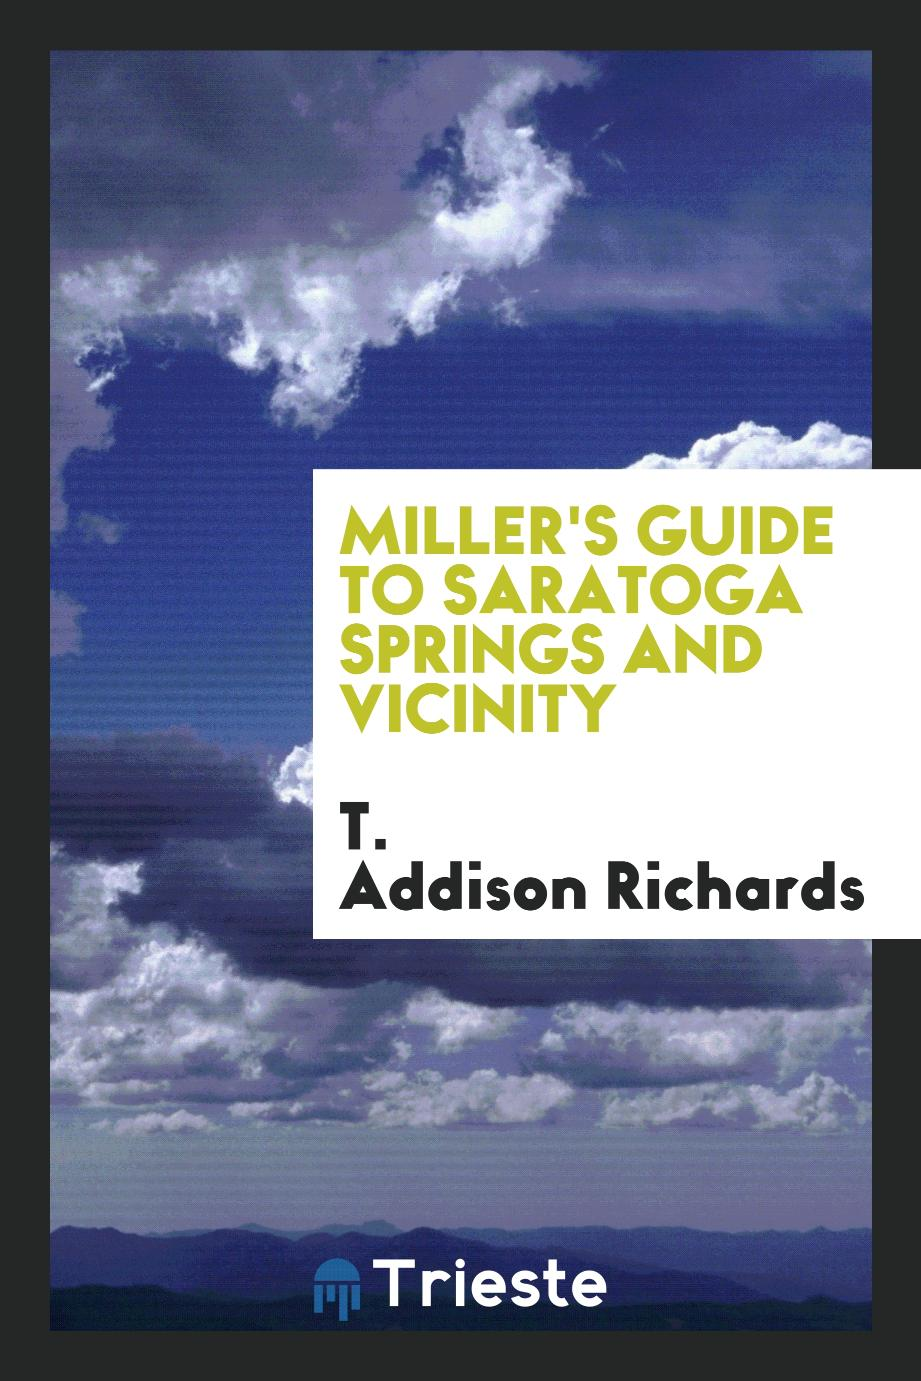 Miller's guide to Saratoga Springs and vicinity